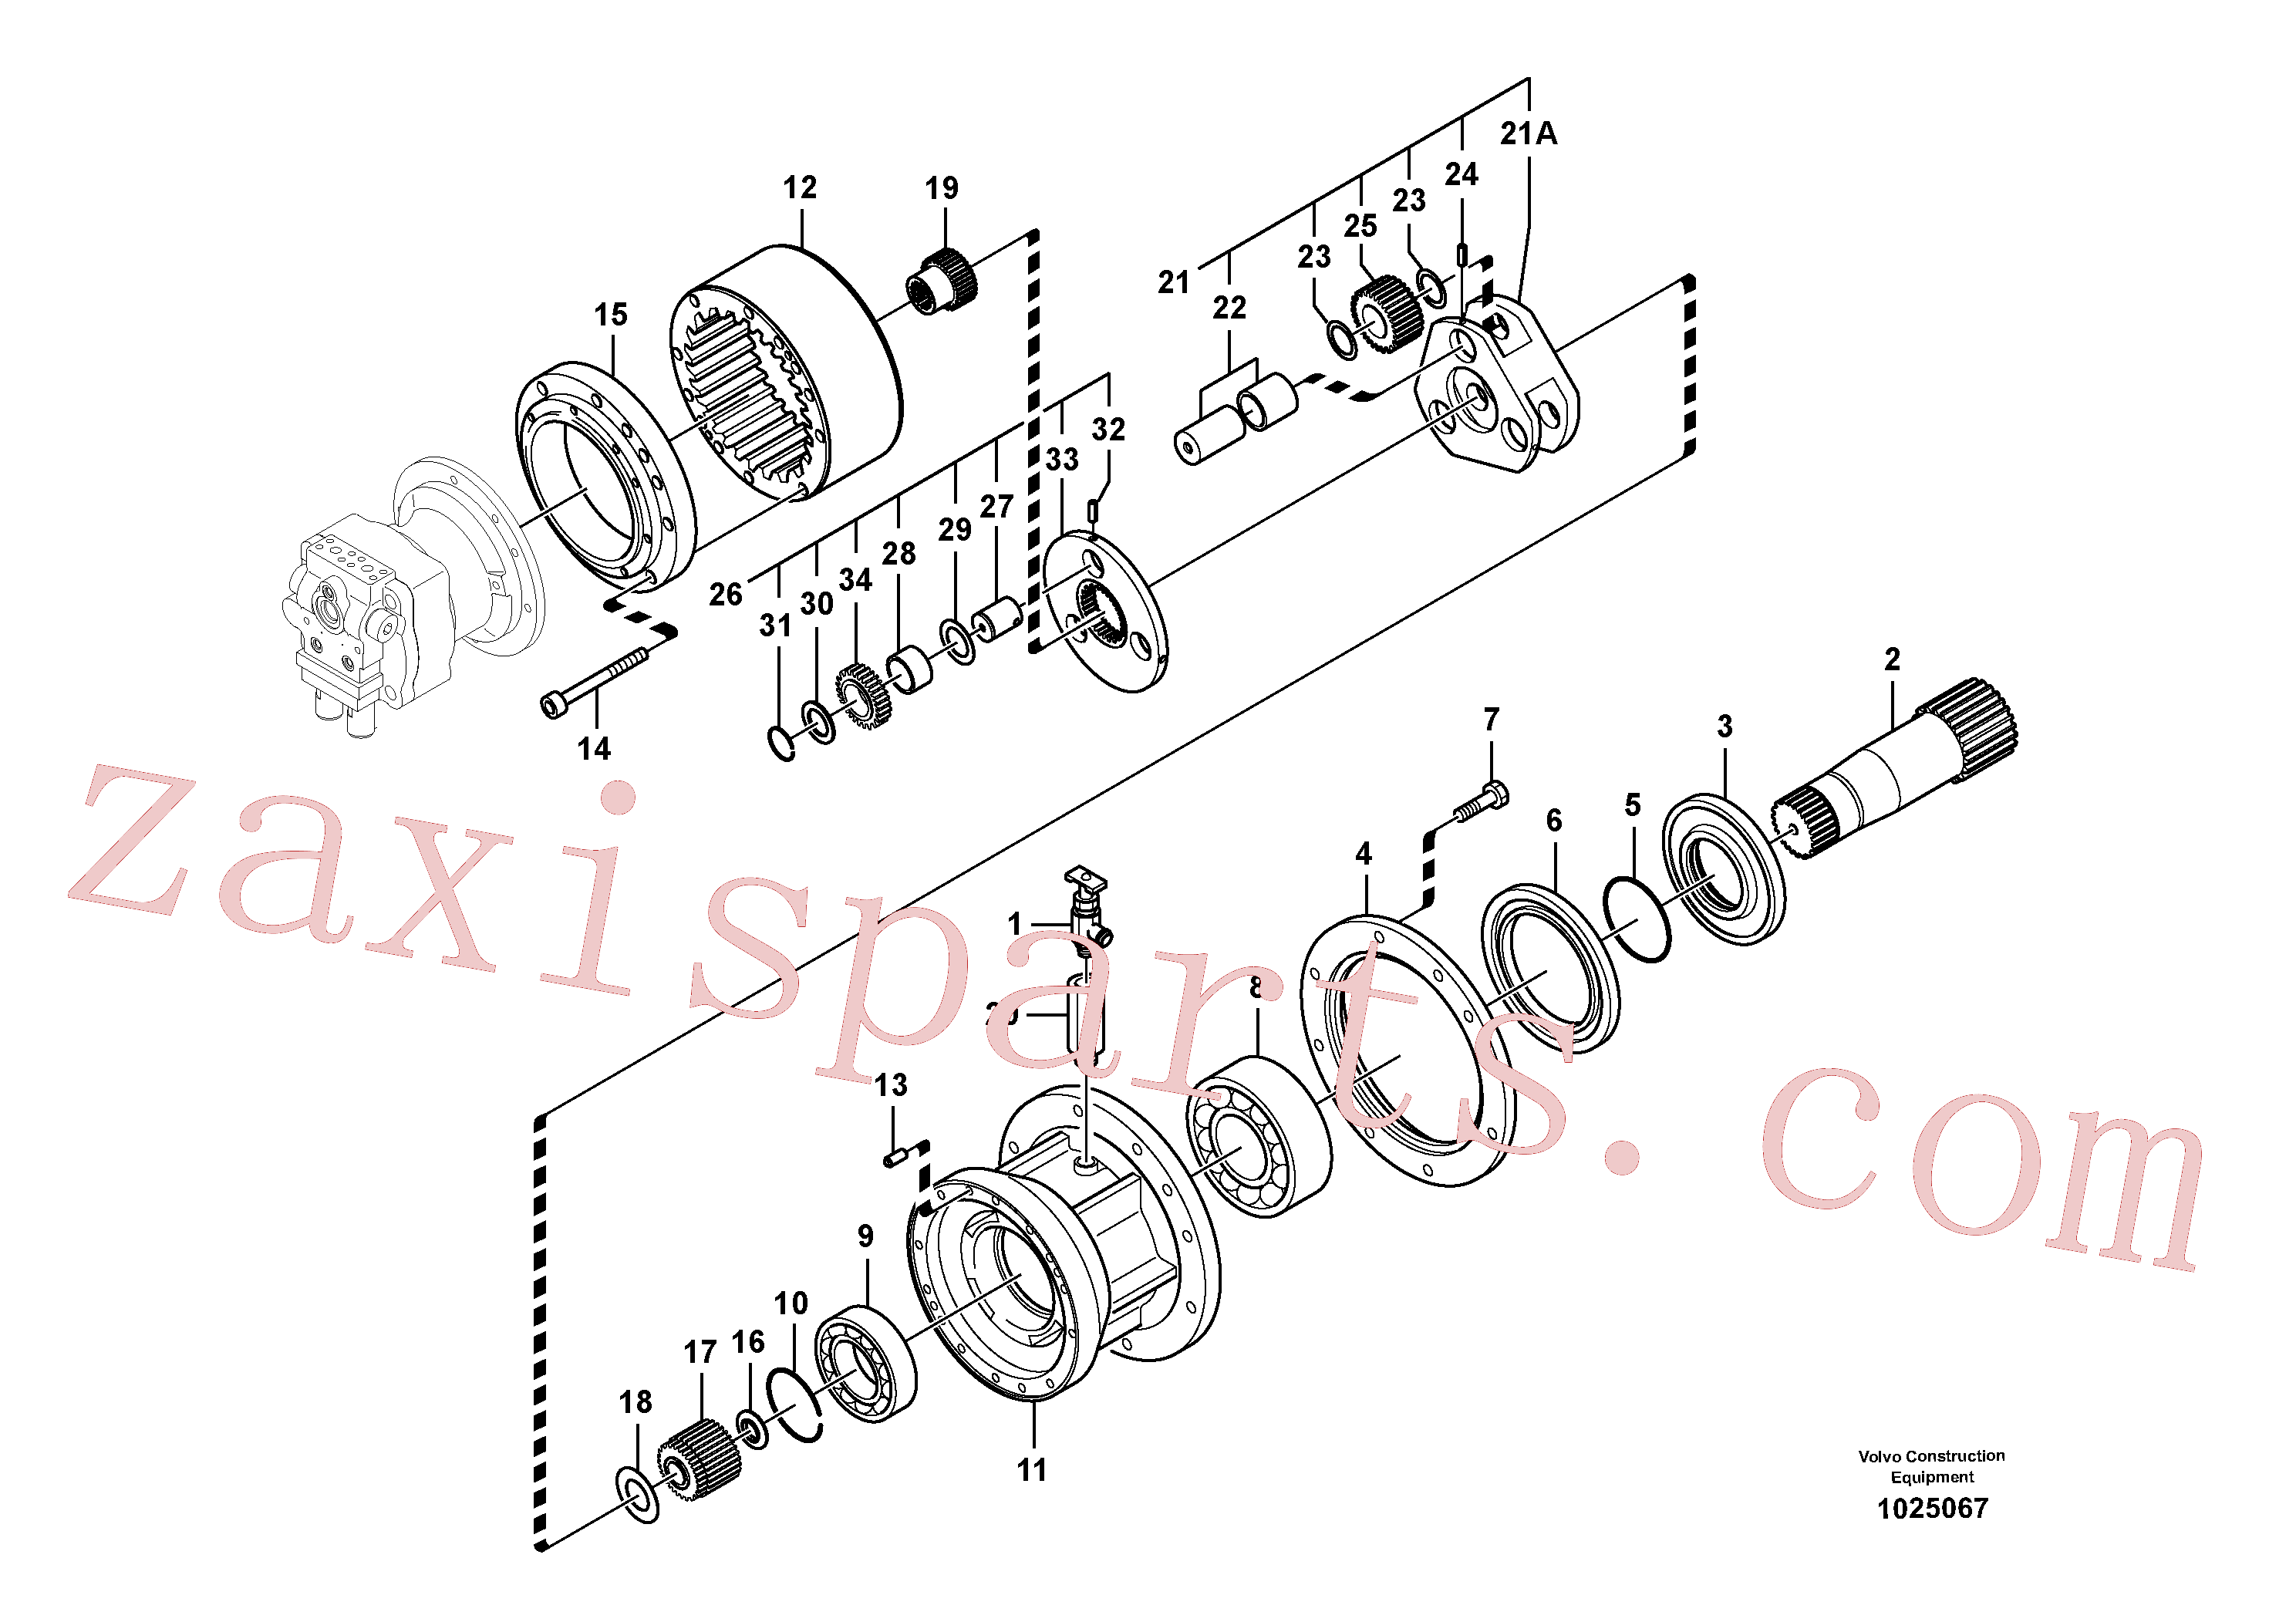 SA7118-30460 for Volvo Swing gearbox(1025067 assembly)